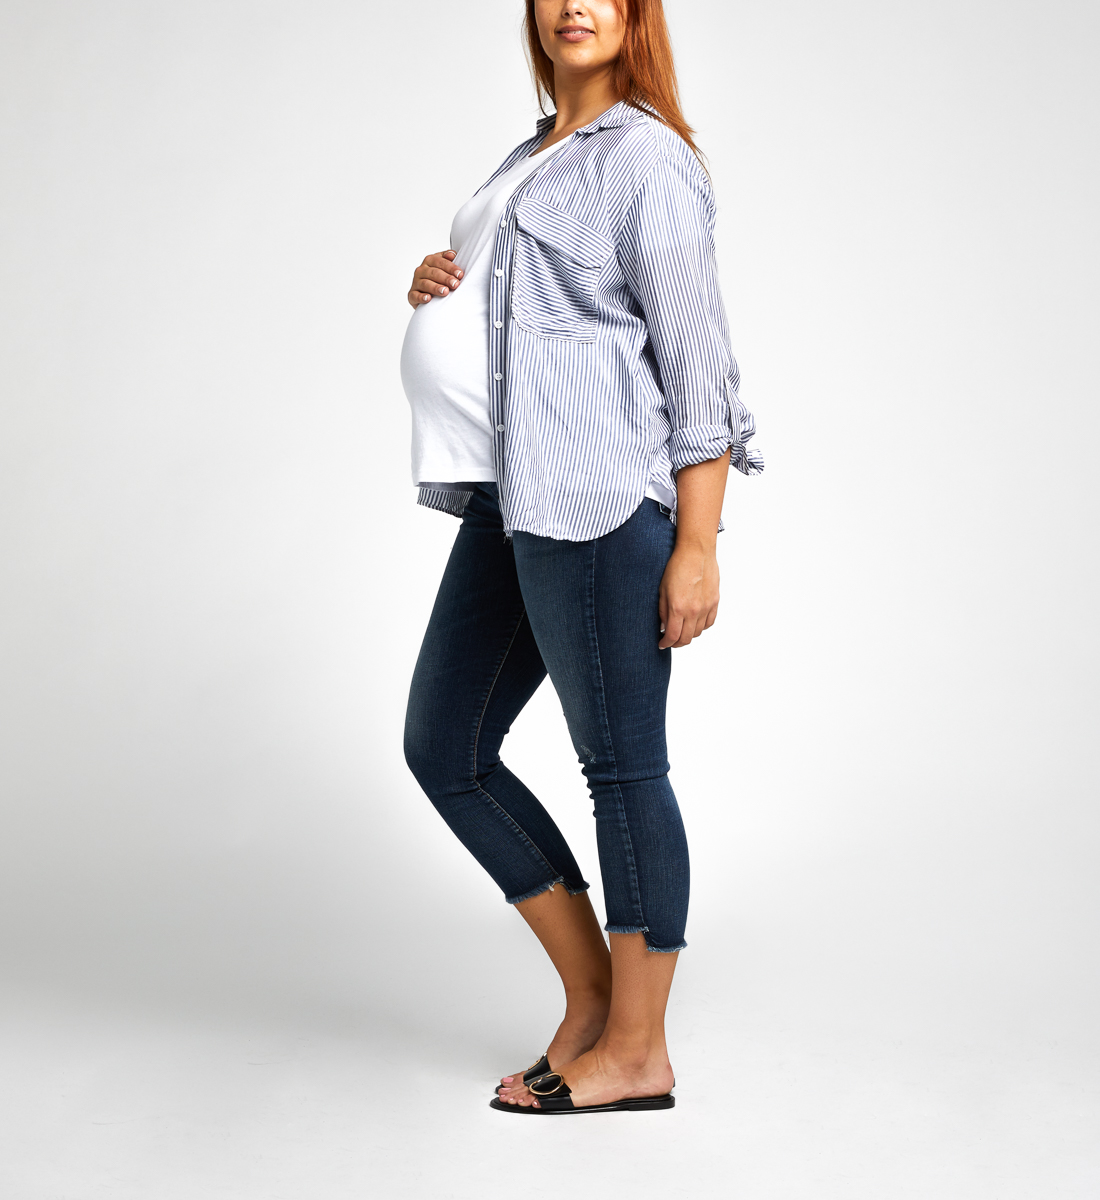 Avery Skinny Crop Maternity Jeans Alt Image 1